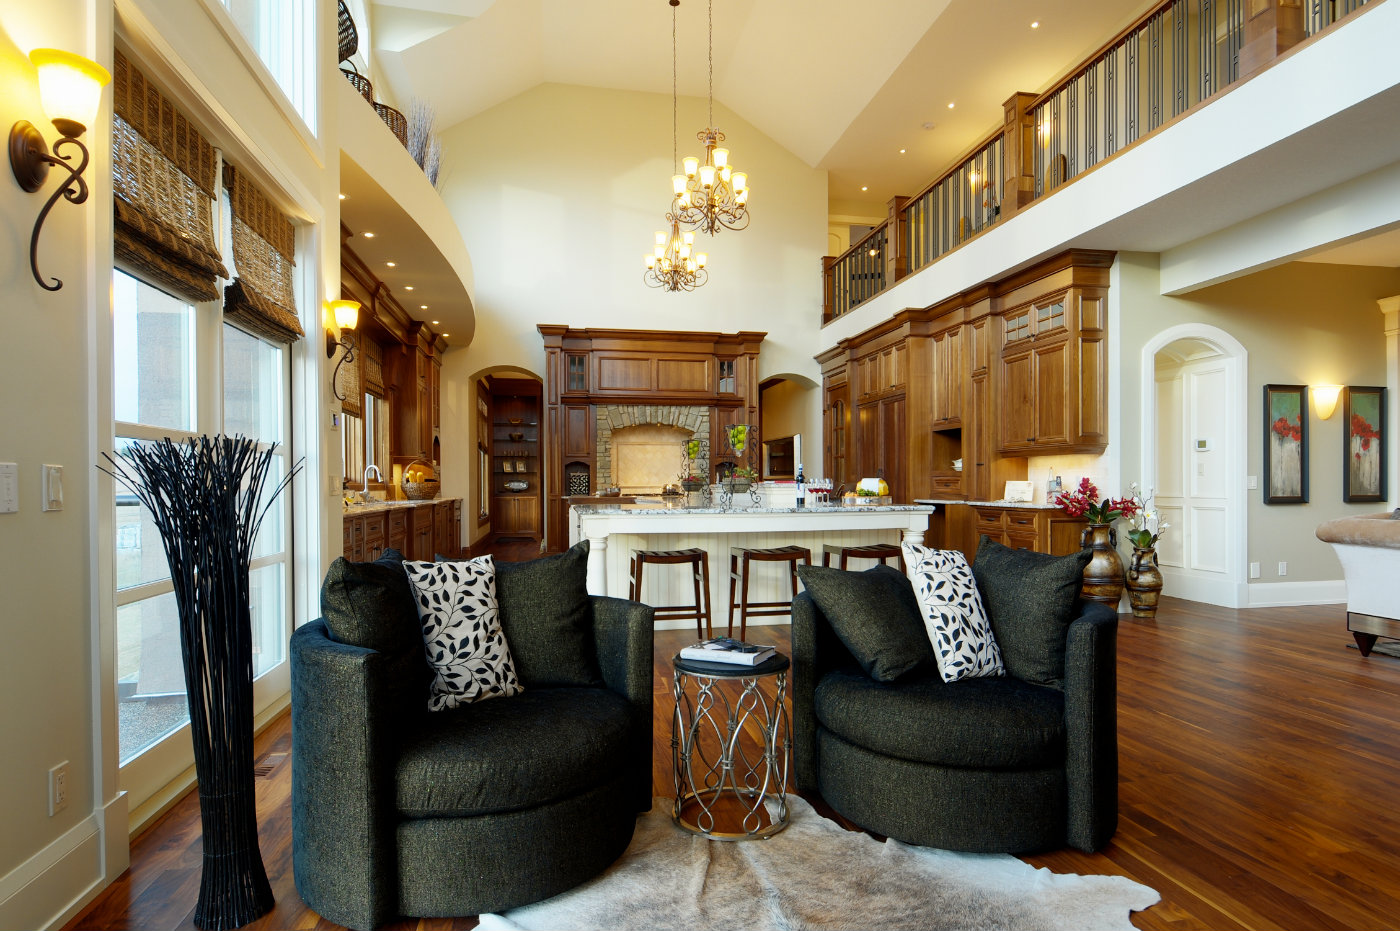 on and home best design ideas pinterest elegant decorating master decor about